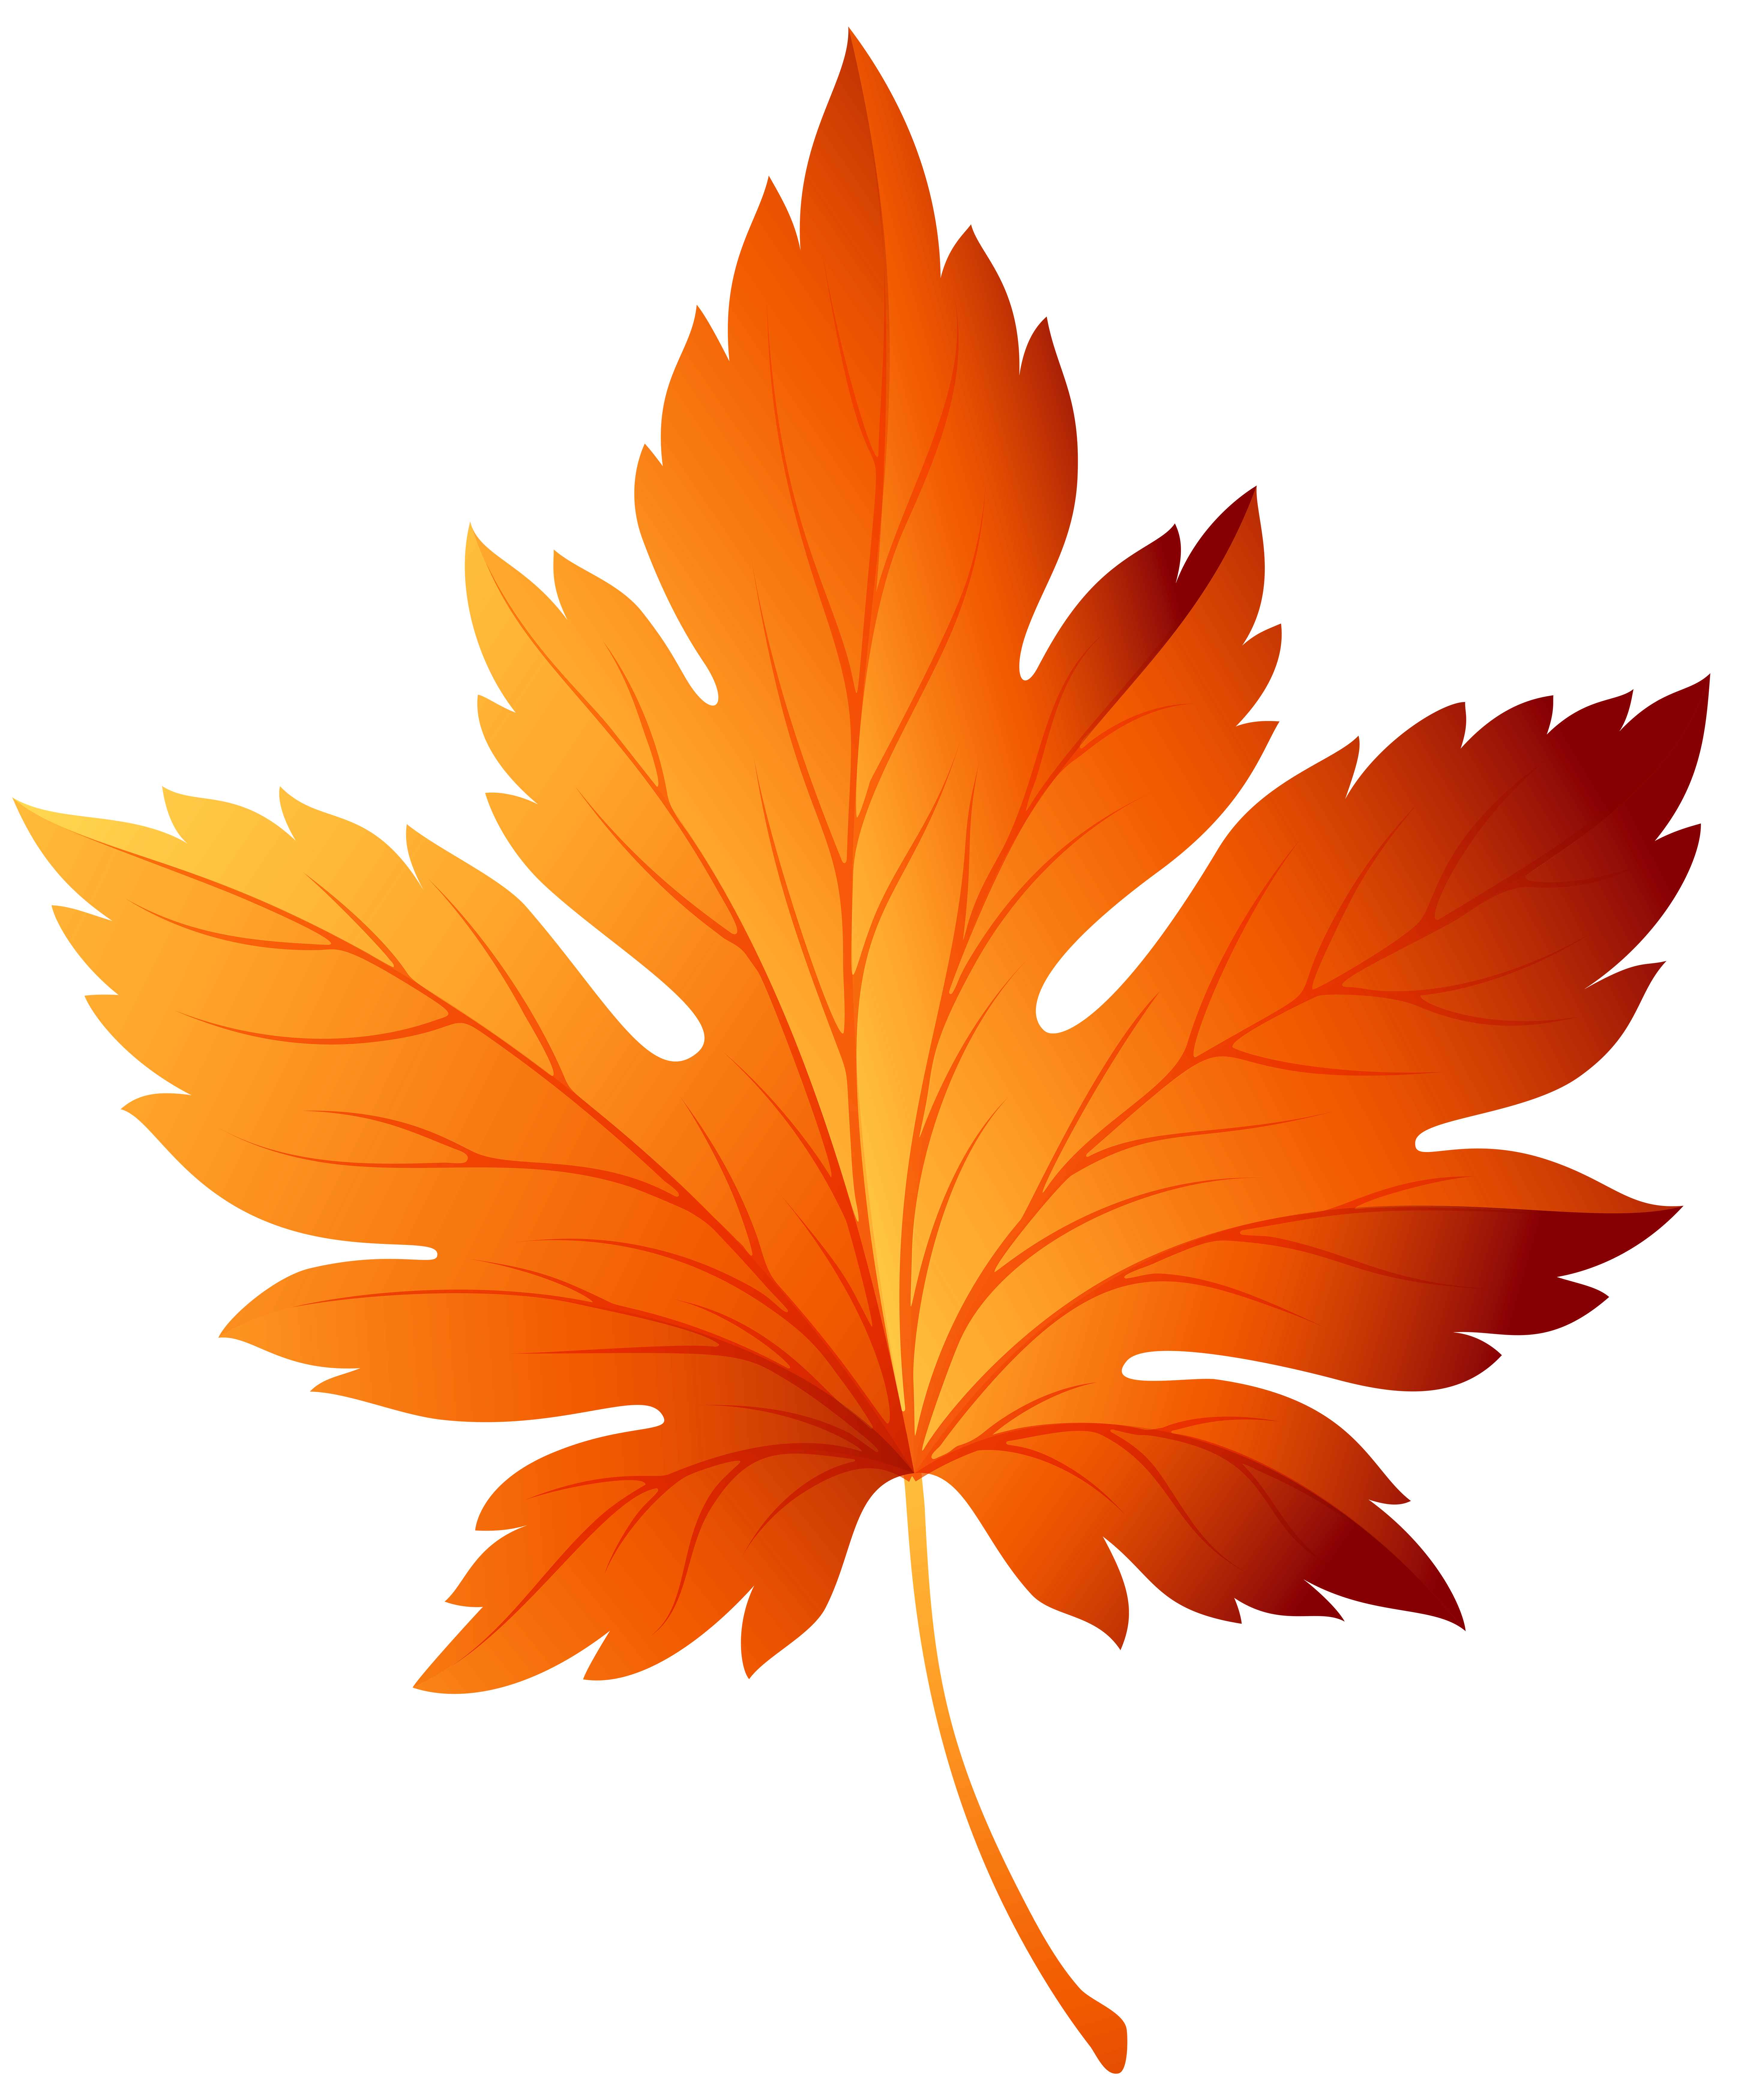 Autumn Leaf Transparent Picture Free Download | Png in ...